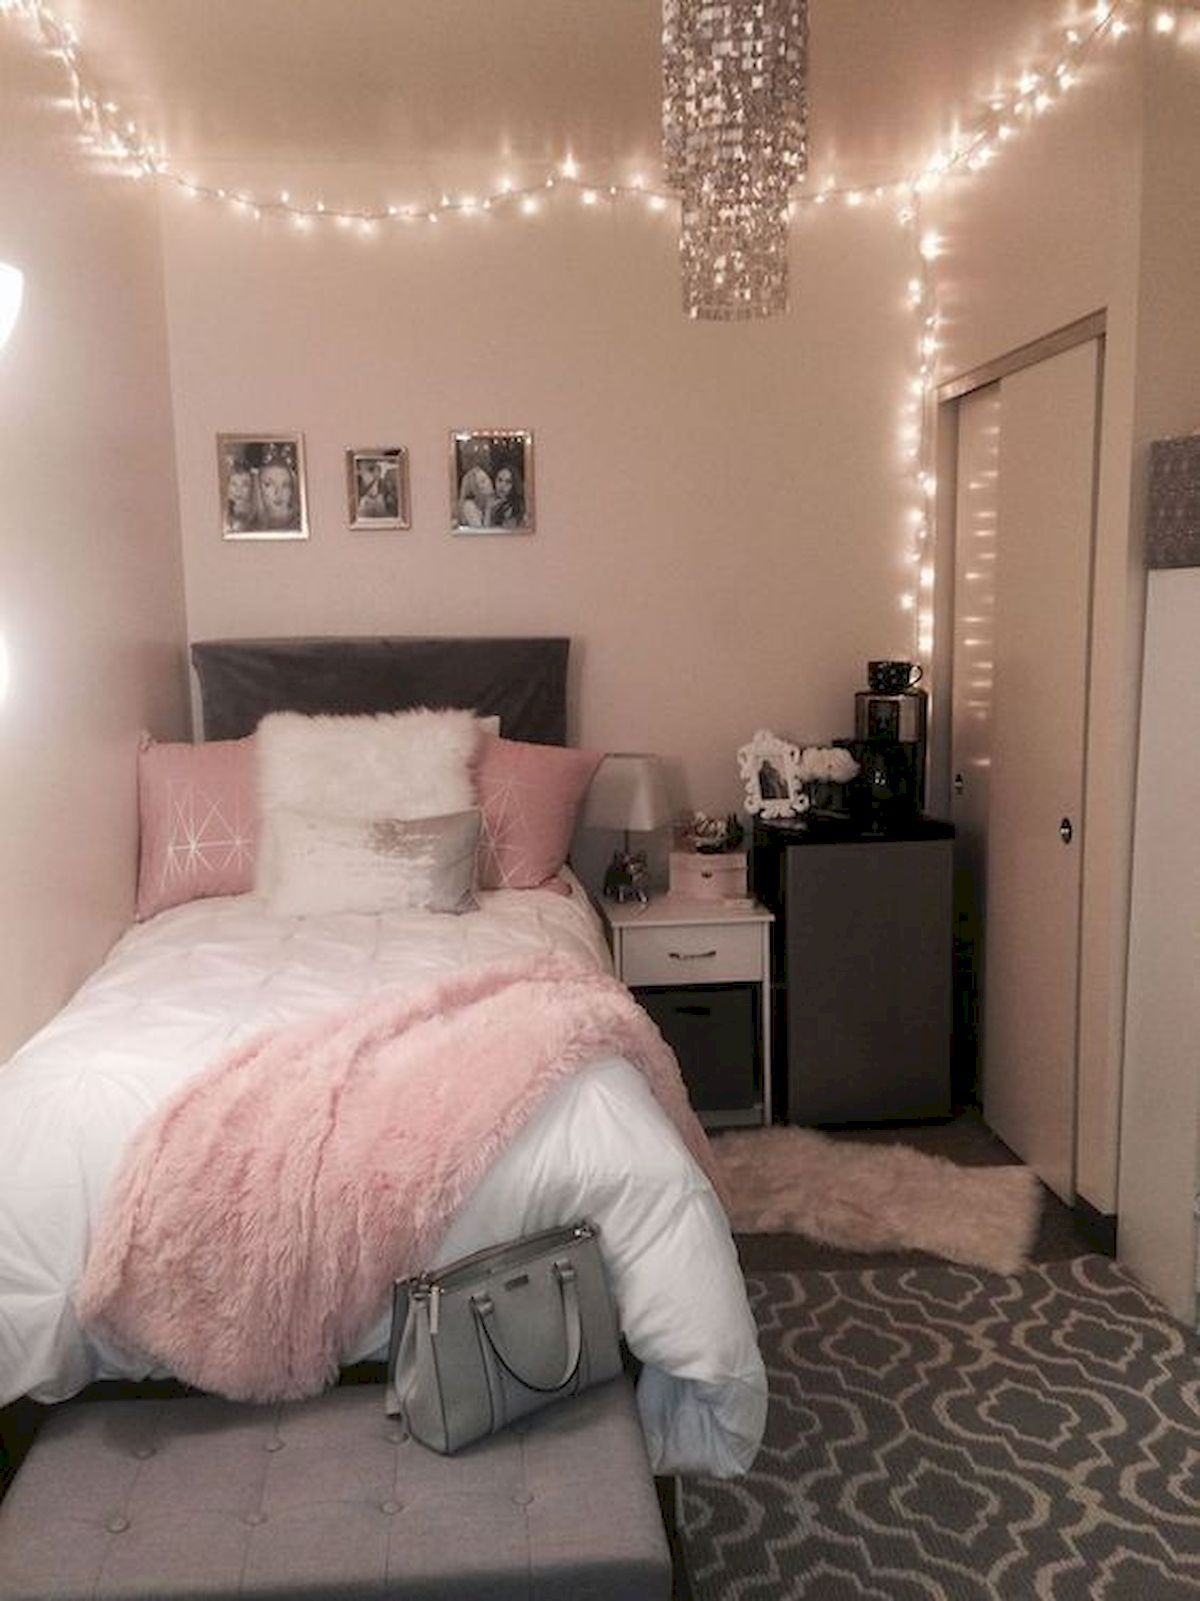 11 Cute Small Bedroom Design and Decor Ideas for Teenage Girl